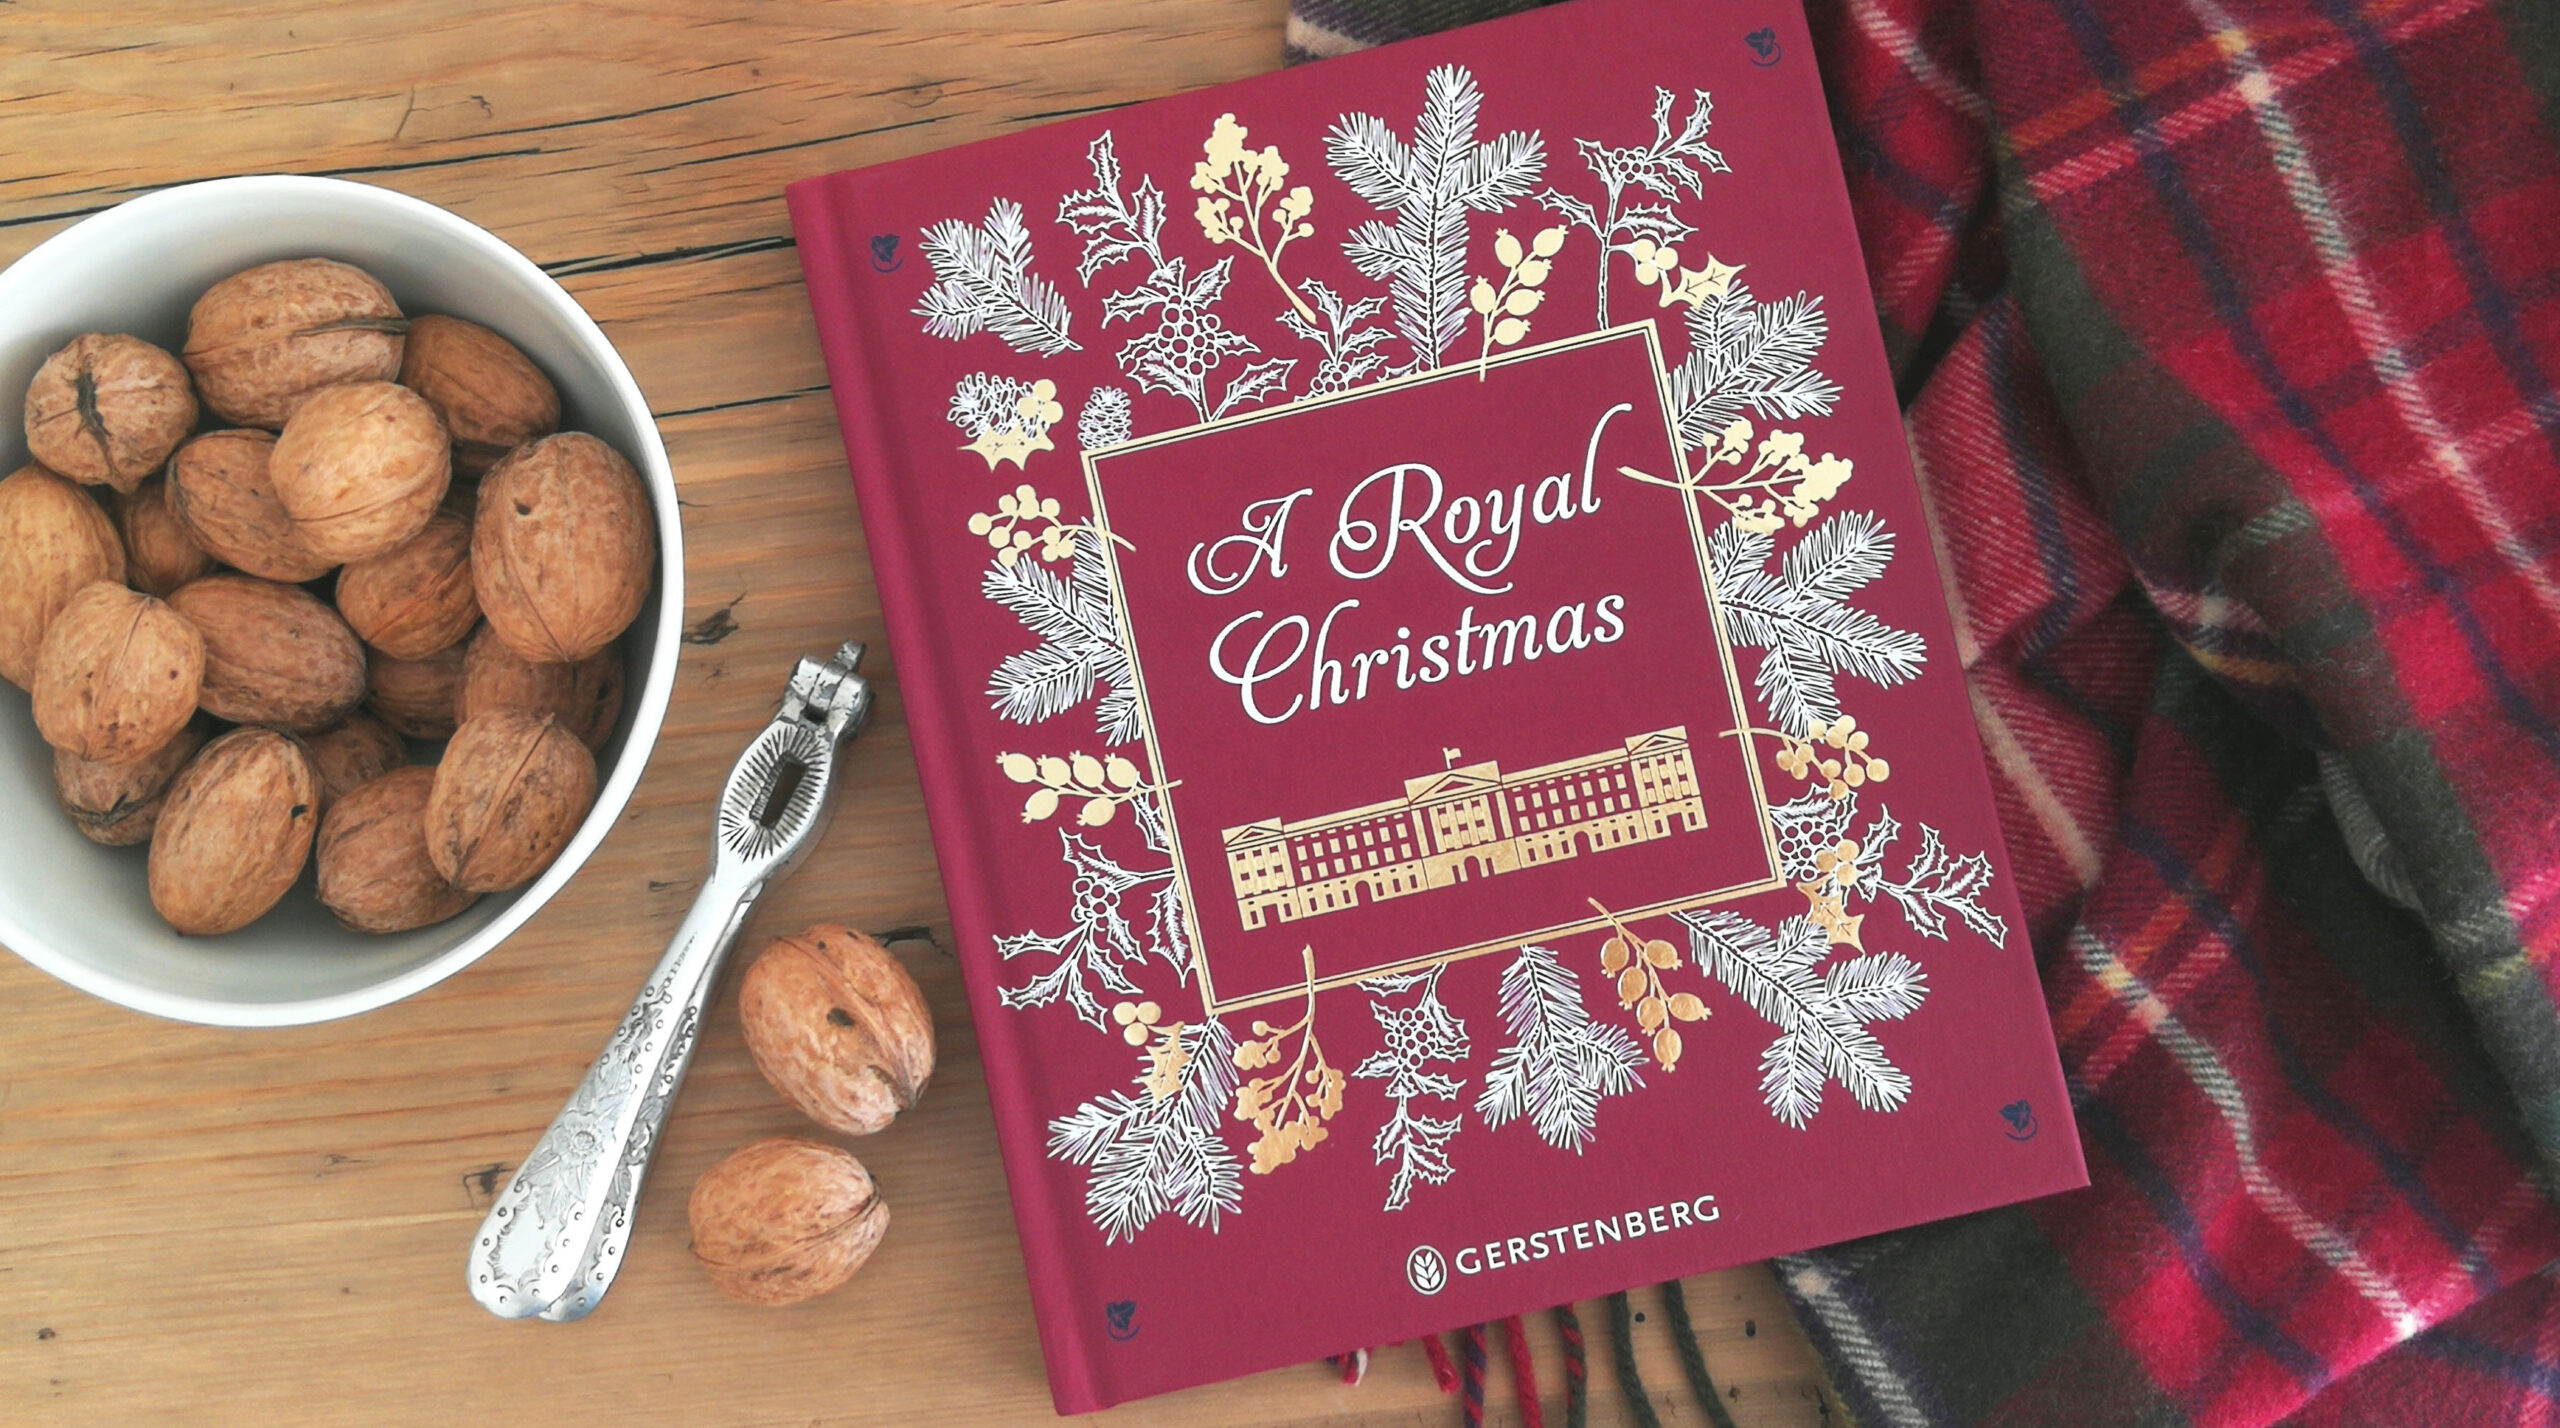 Lady-Blog liest: A Royal Christmasvon Louise Cooling